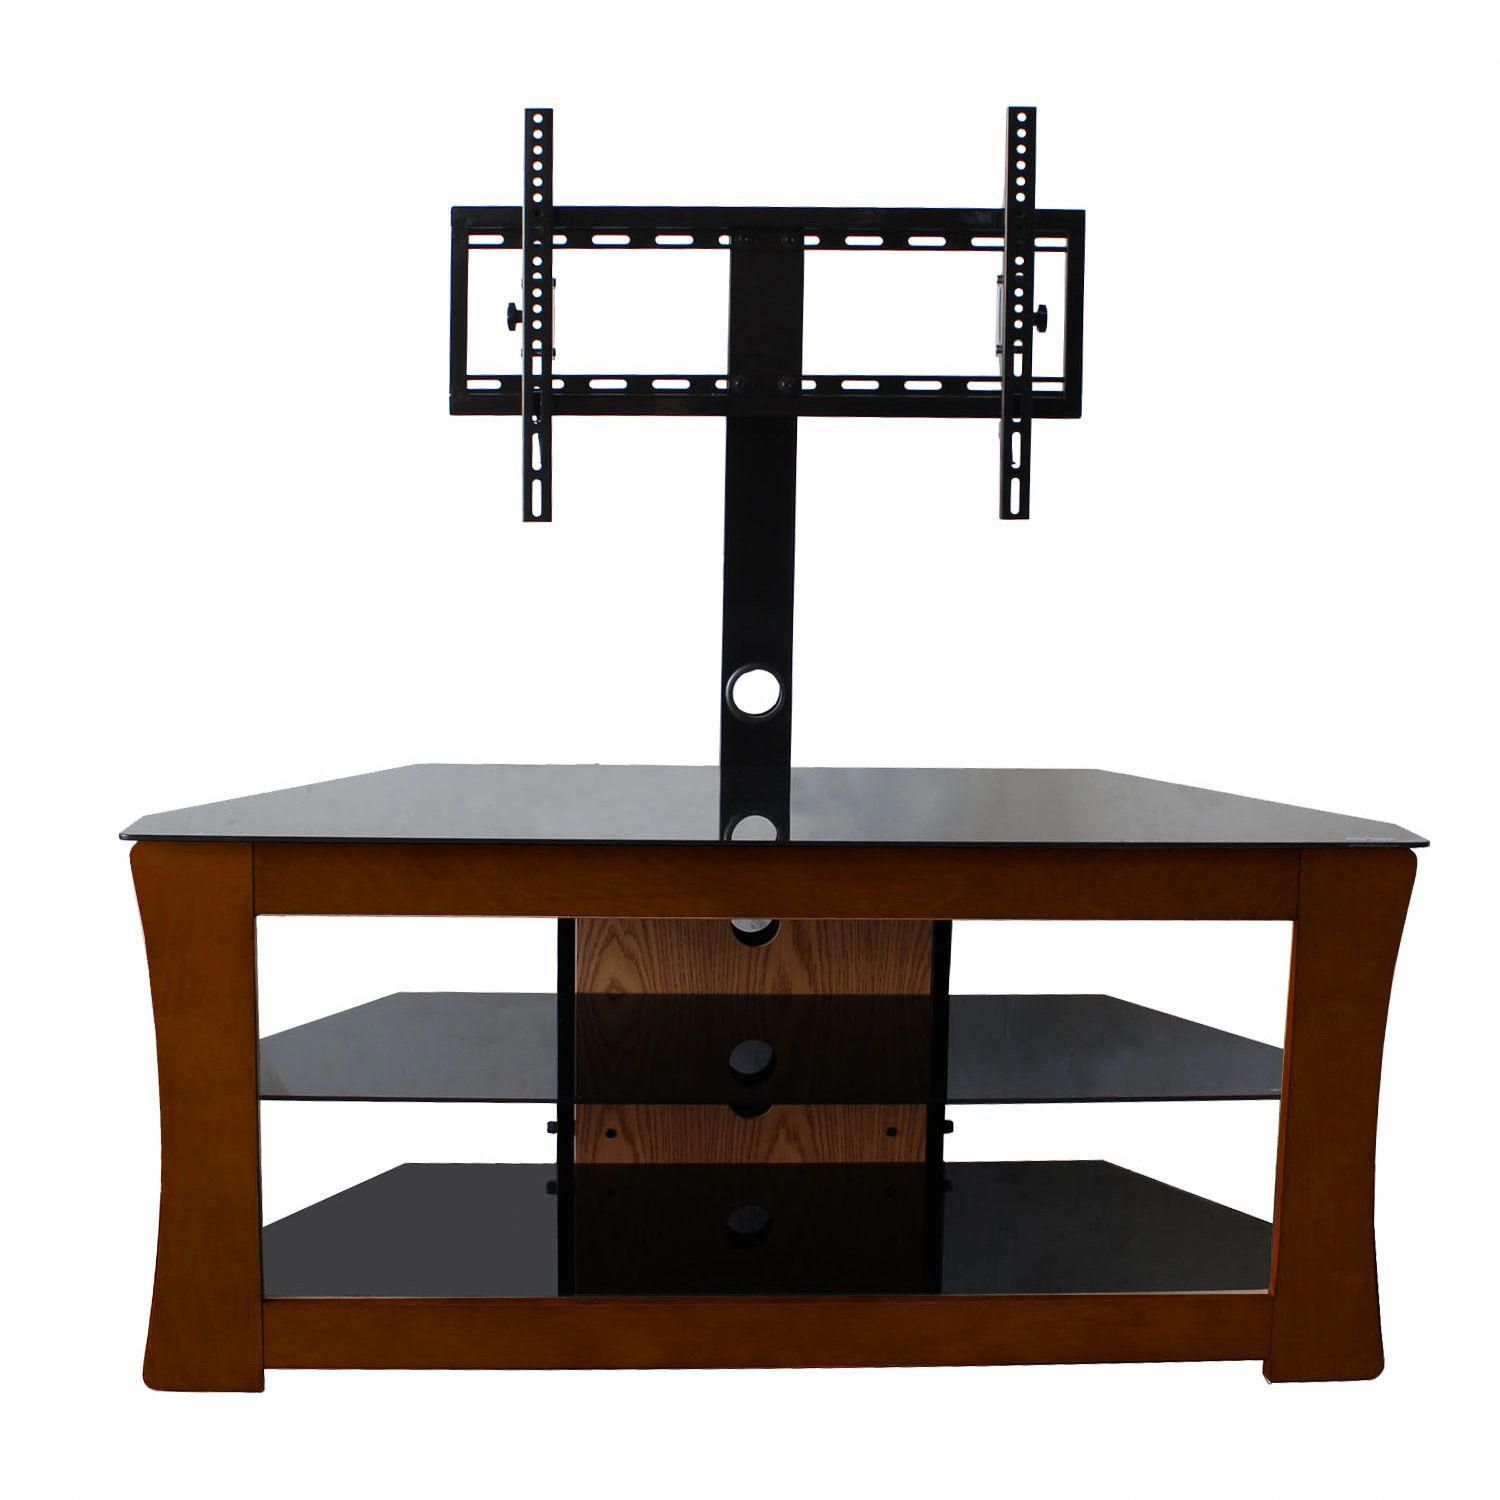 Avista S Visto Is A Tv Stand With A Rear Back Mount The Rear Back